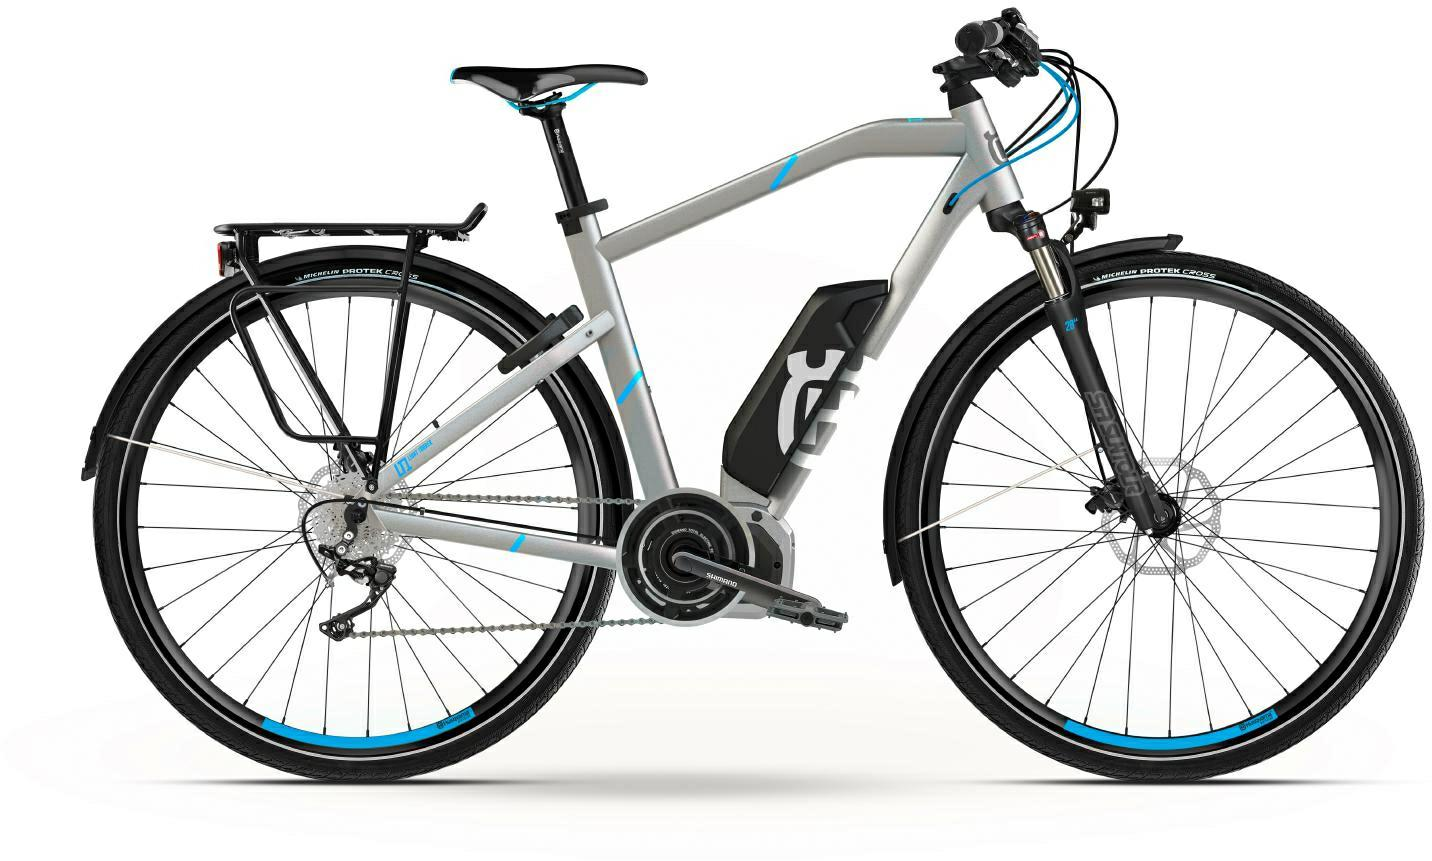 Husqvarna Light Tourer LT1 Trekking e-Bike, Touren Pedelec 2018 silber/cyan Diamantrahmen